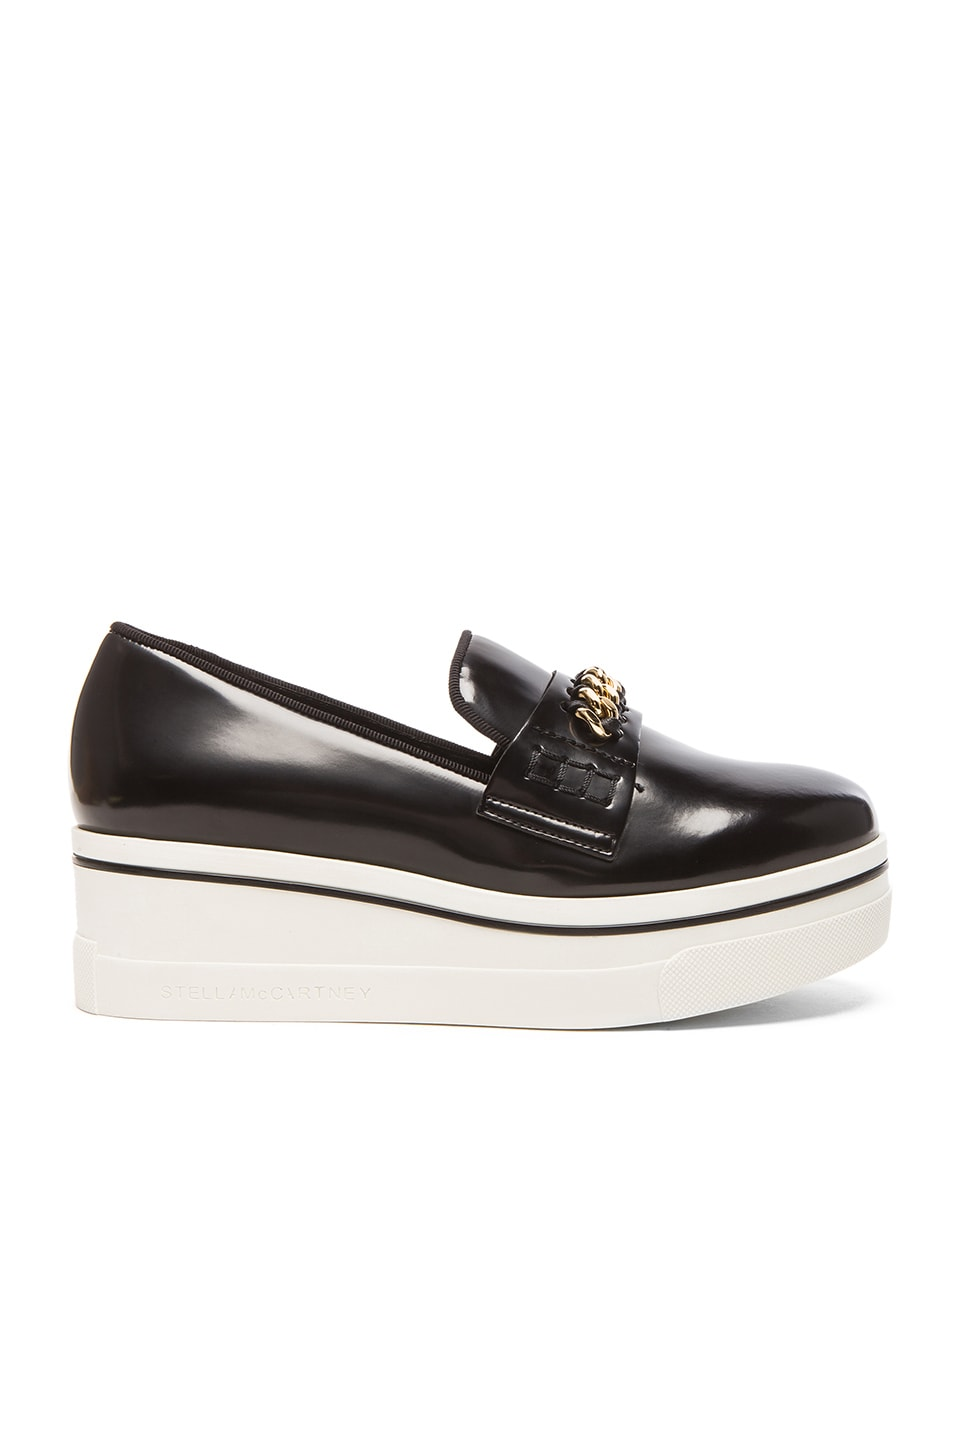 Embellished Faux Leather Platform Slip-On Sneakers in Black